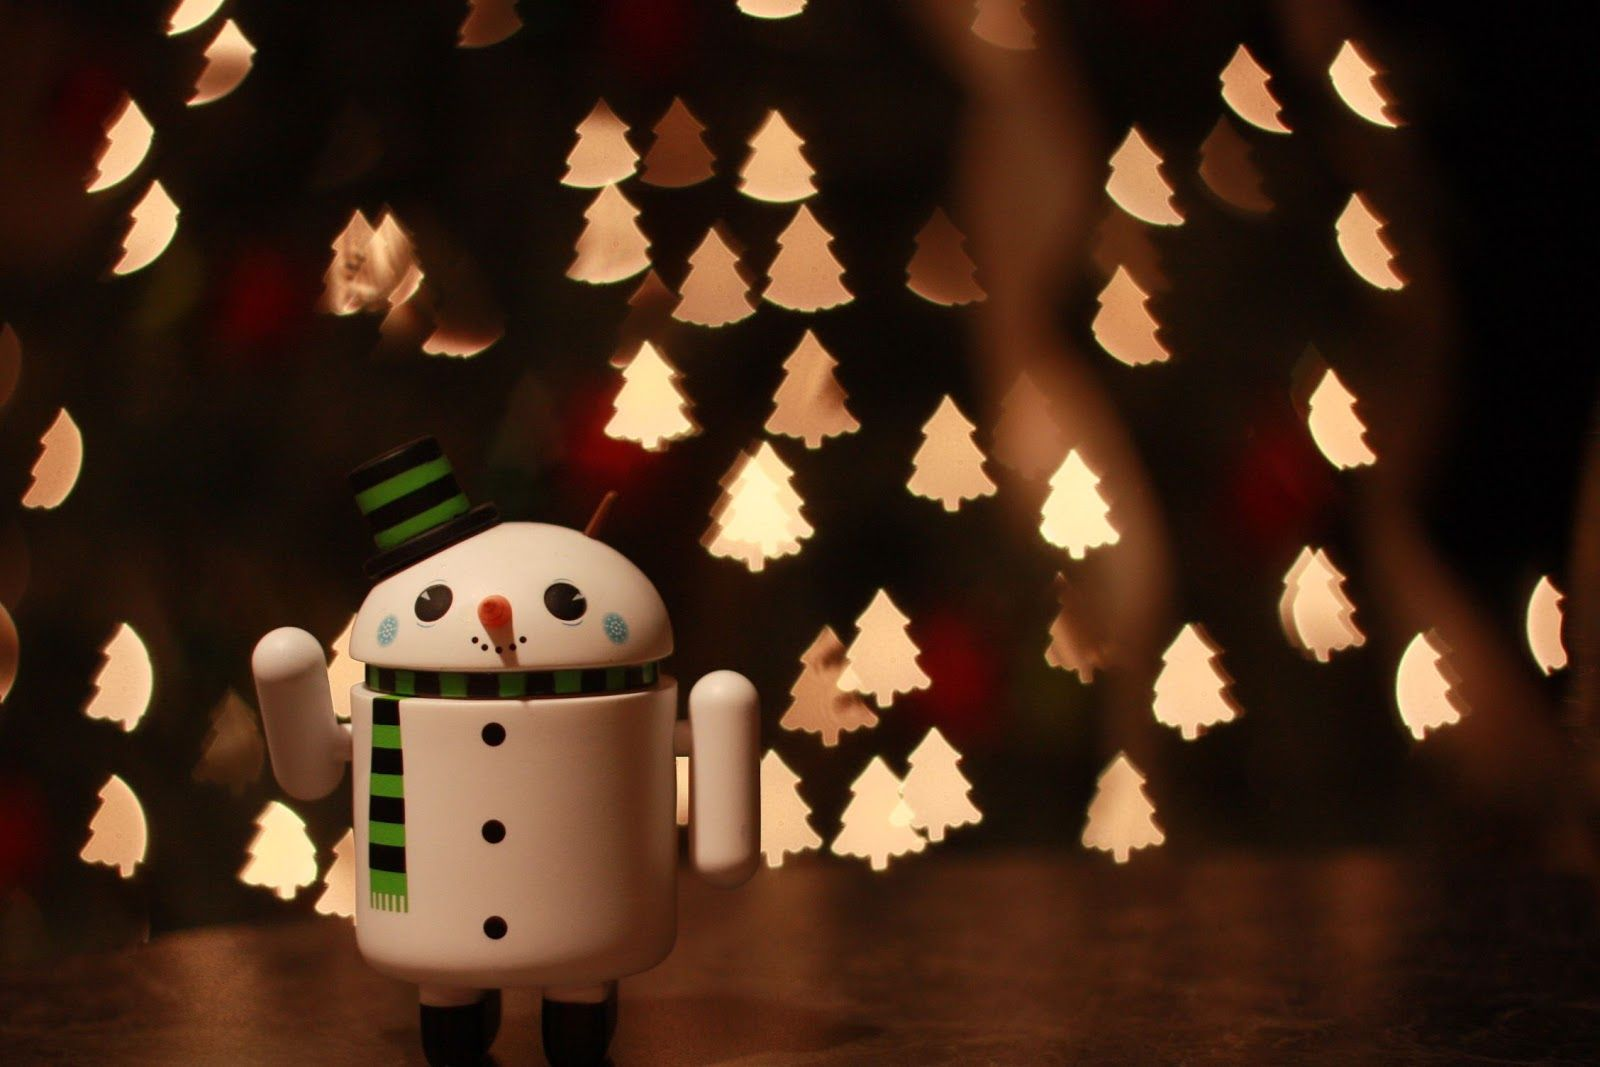 Christmas Hd Wallpaper For Android.Photography Christmas Wallpapers Top Free Photography